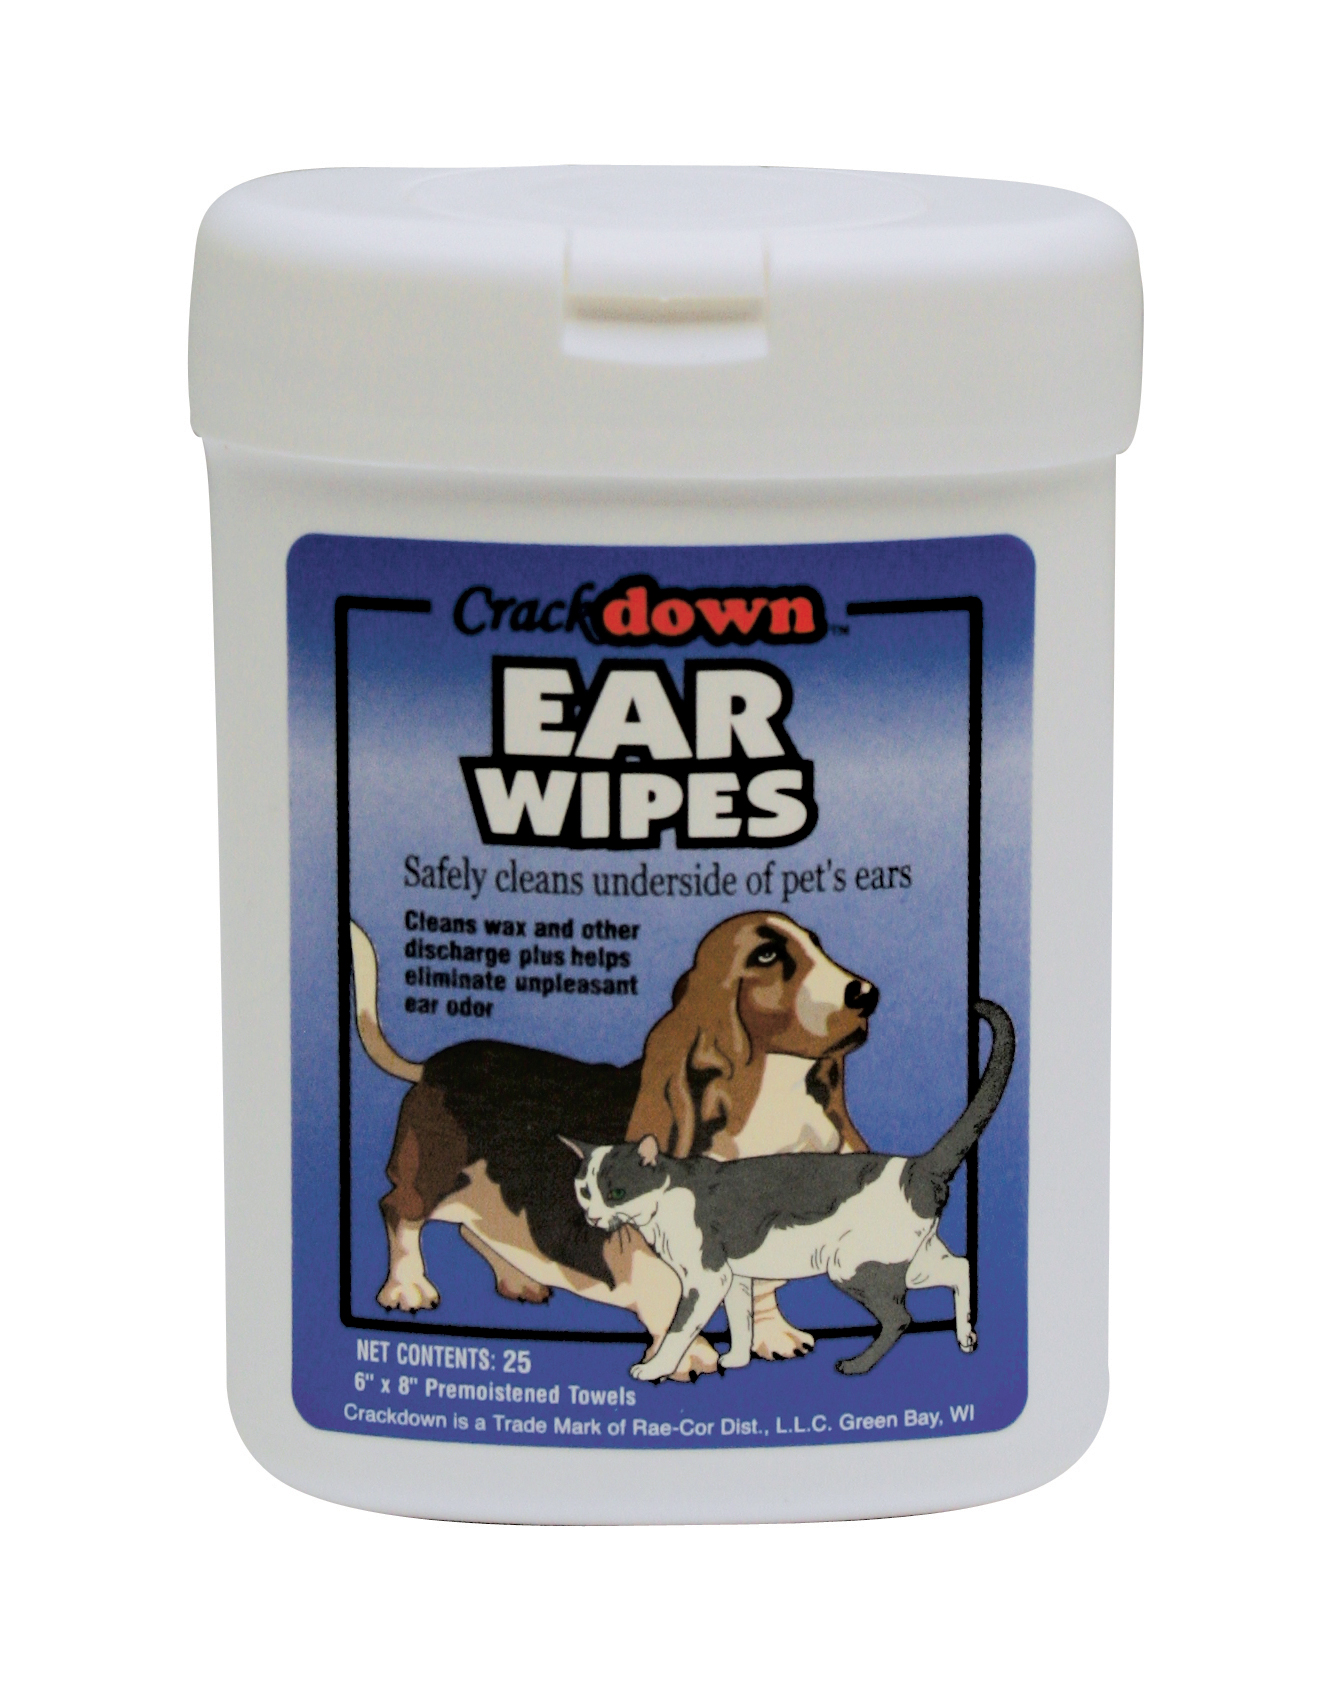 EAR WIPES - 25 COUNT CANISTER